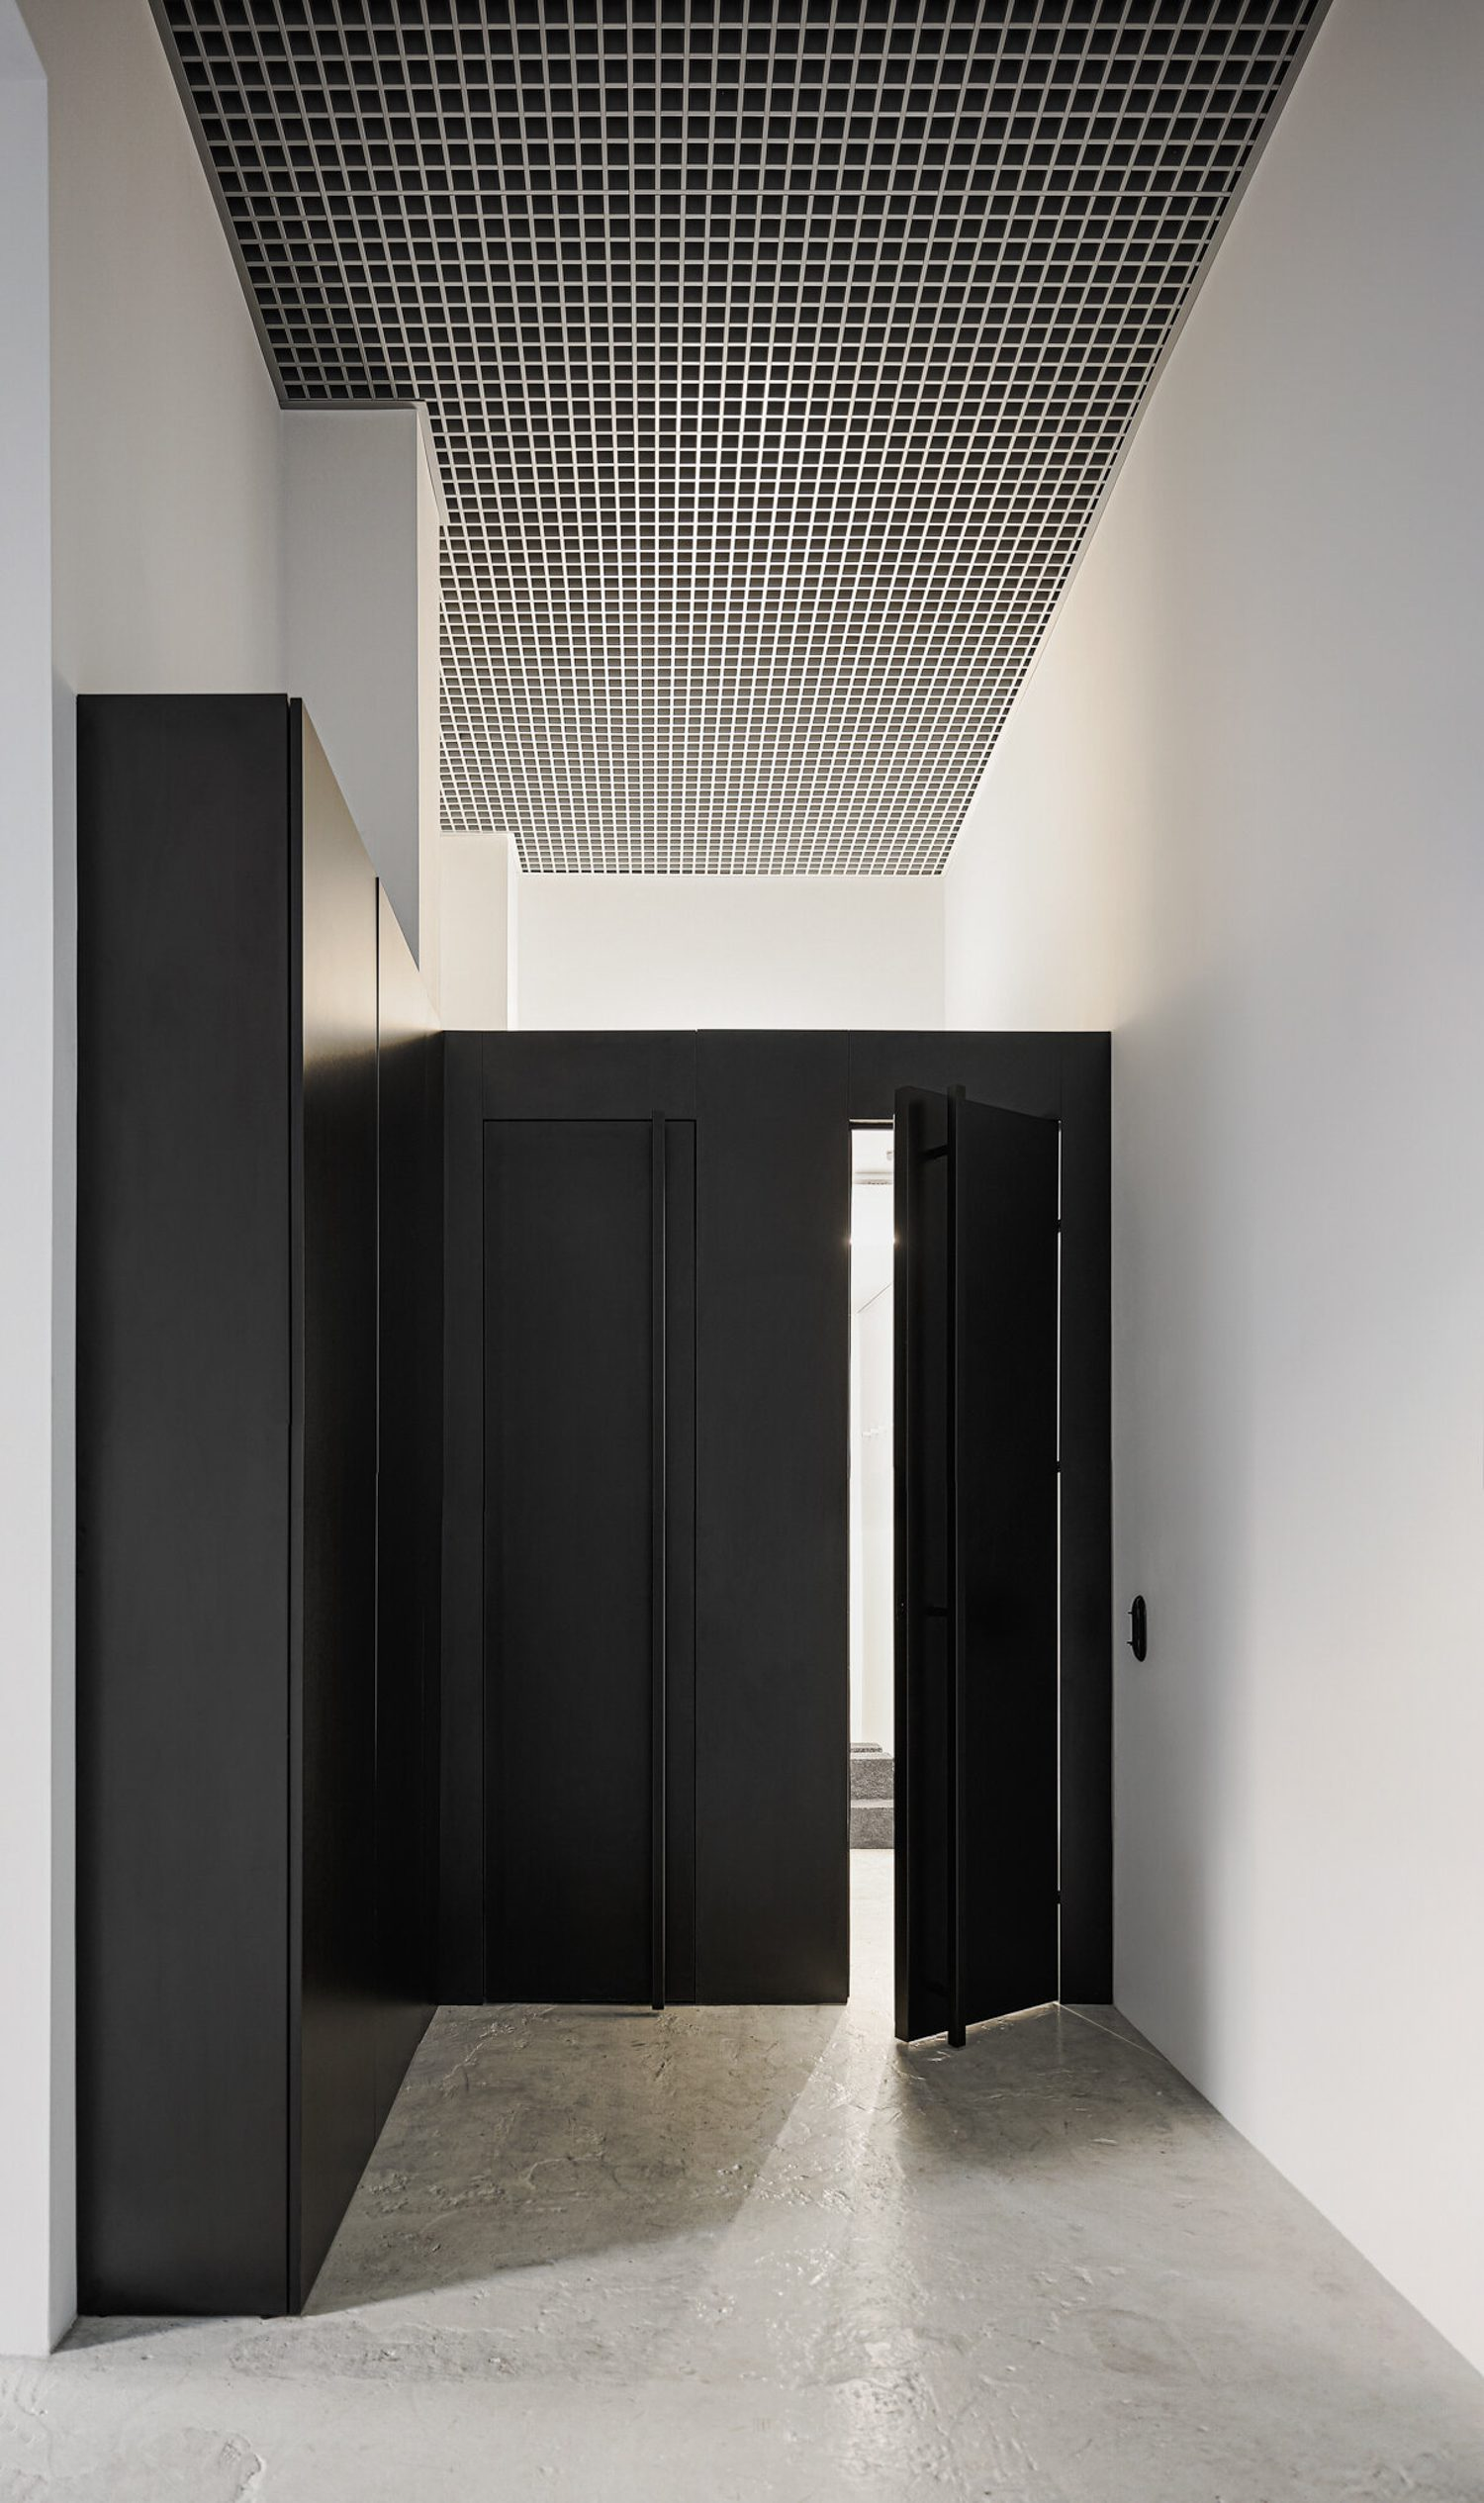 The only new element of the space is a black built-in that hides the wardrobe and bathroom.